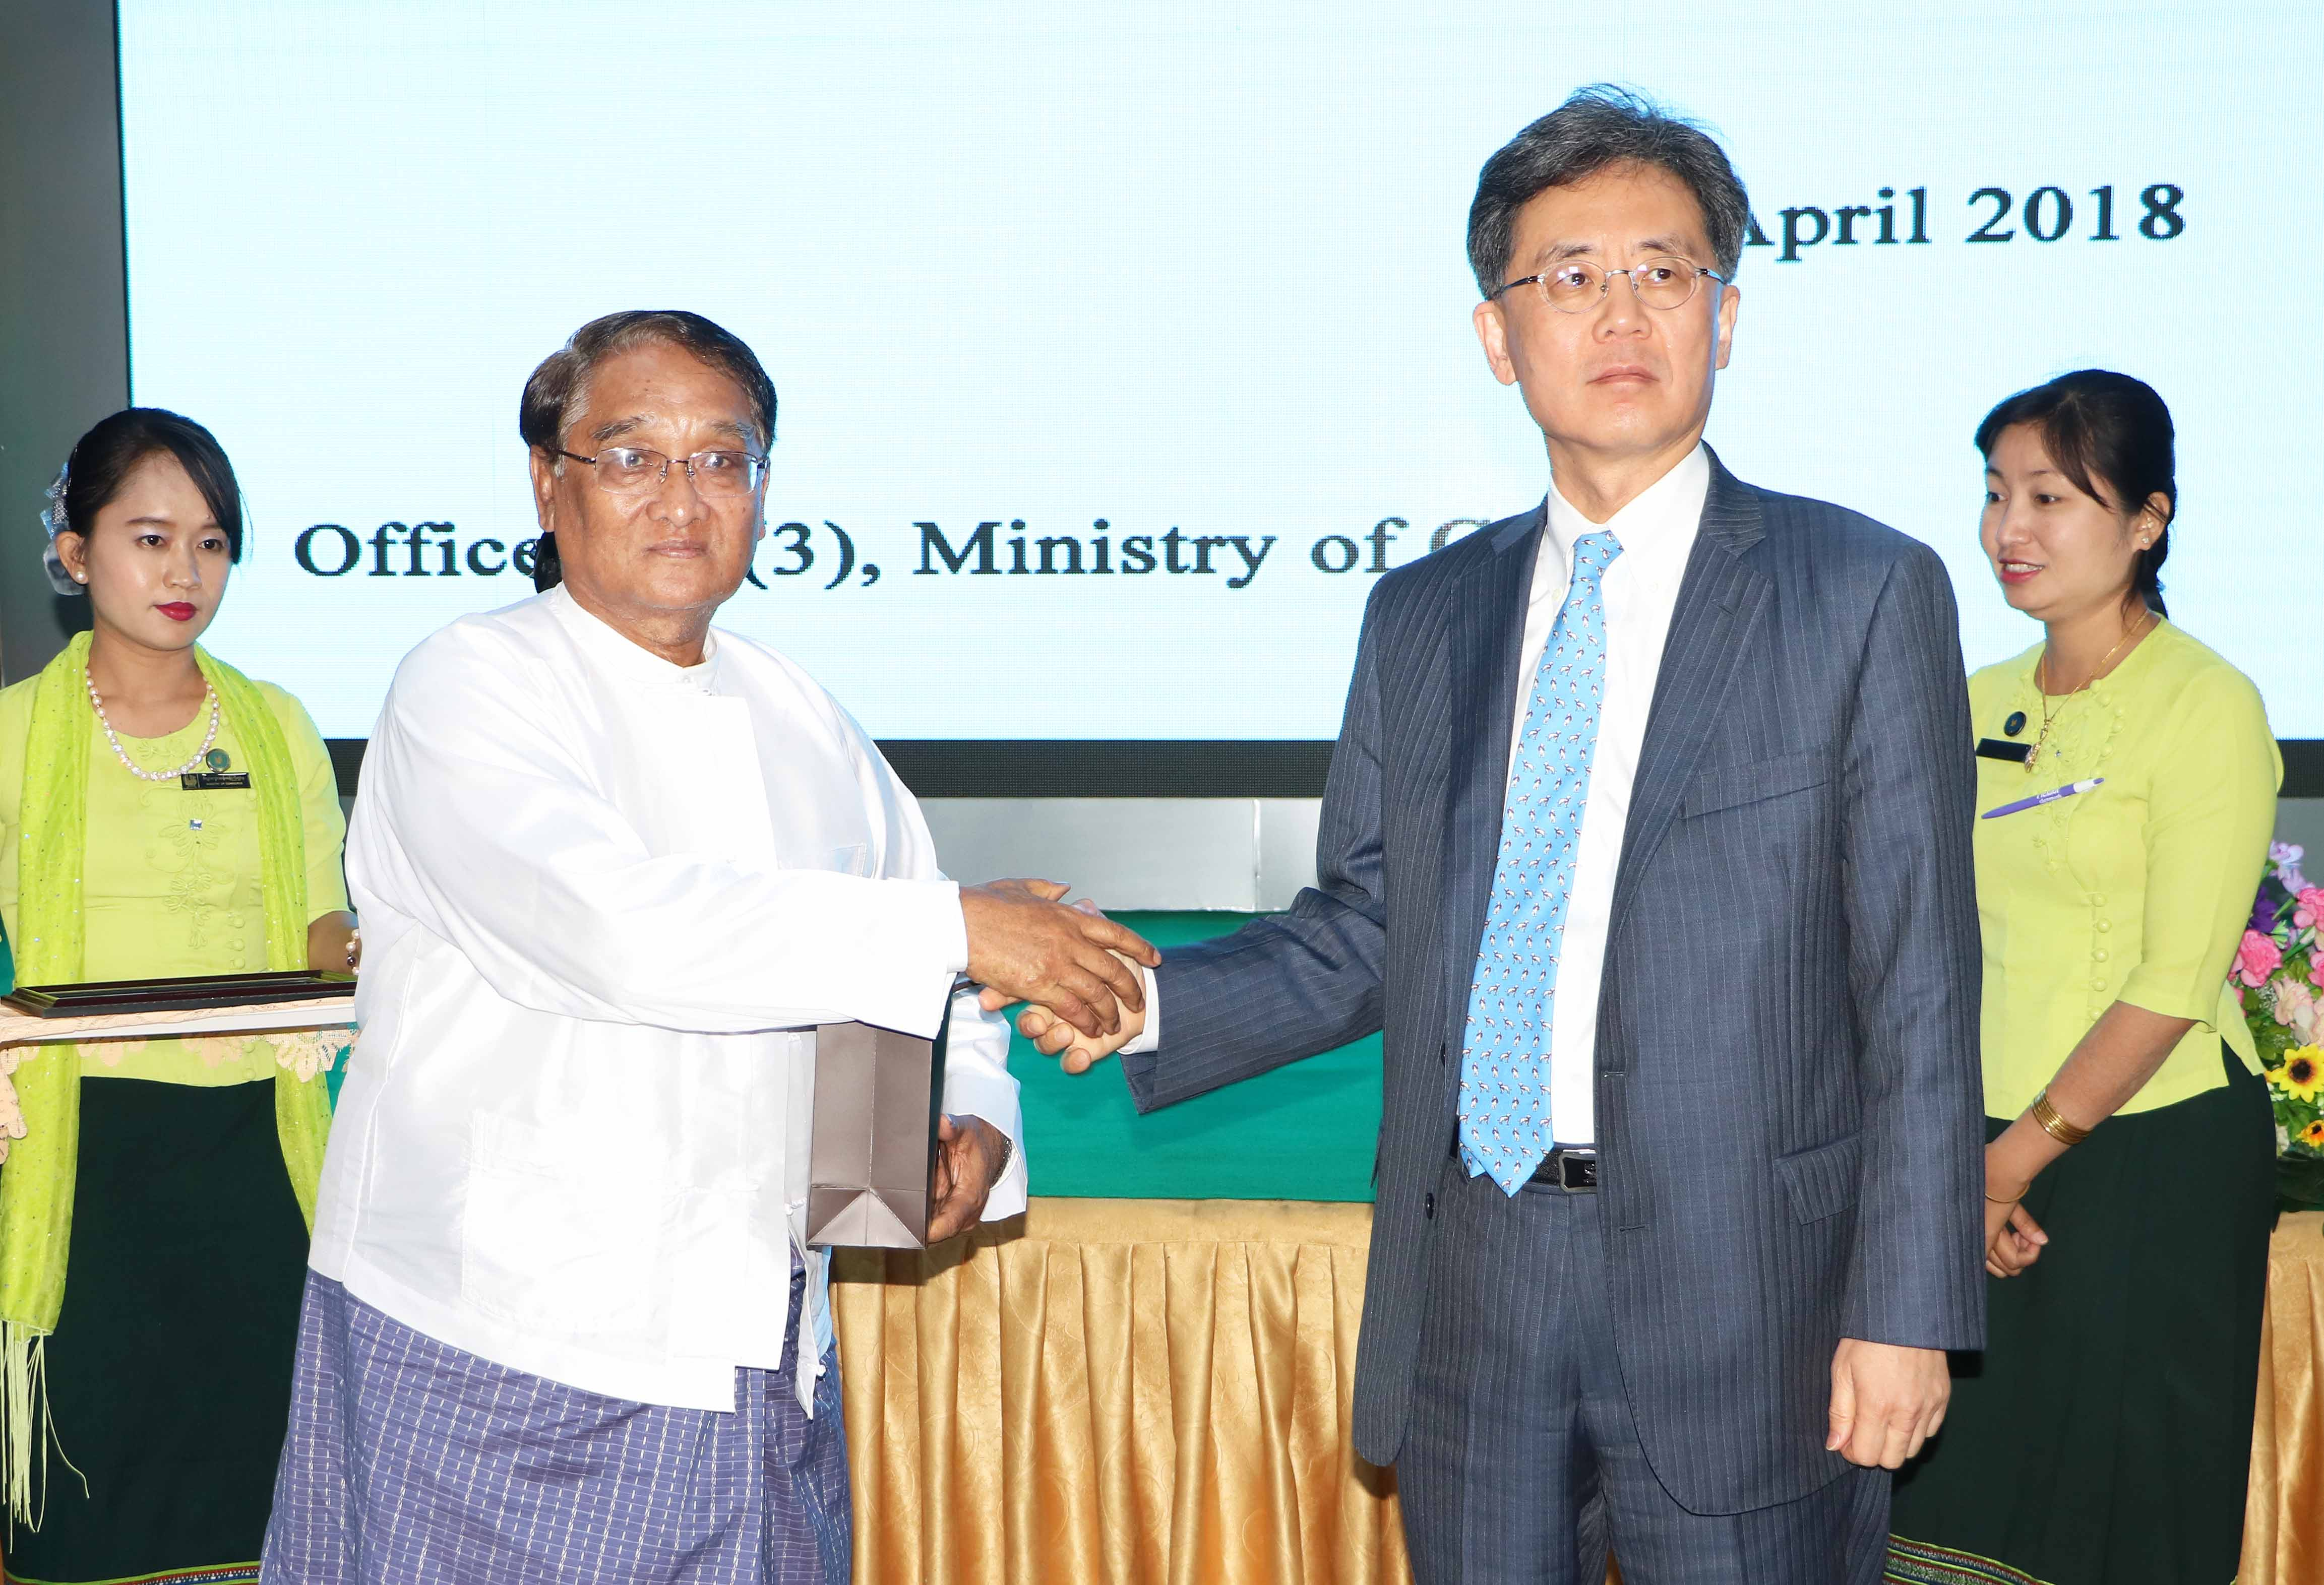 Trade Minister Kim meets with Myanmarese counterpart